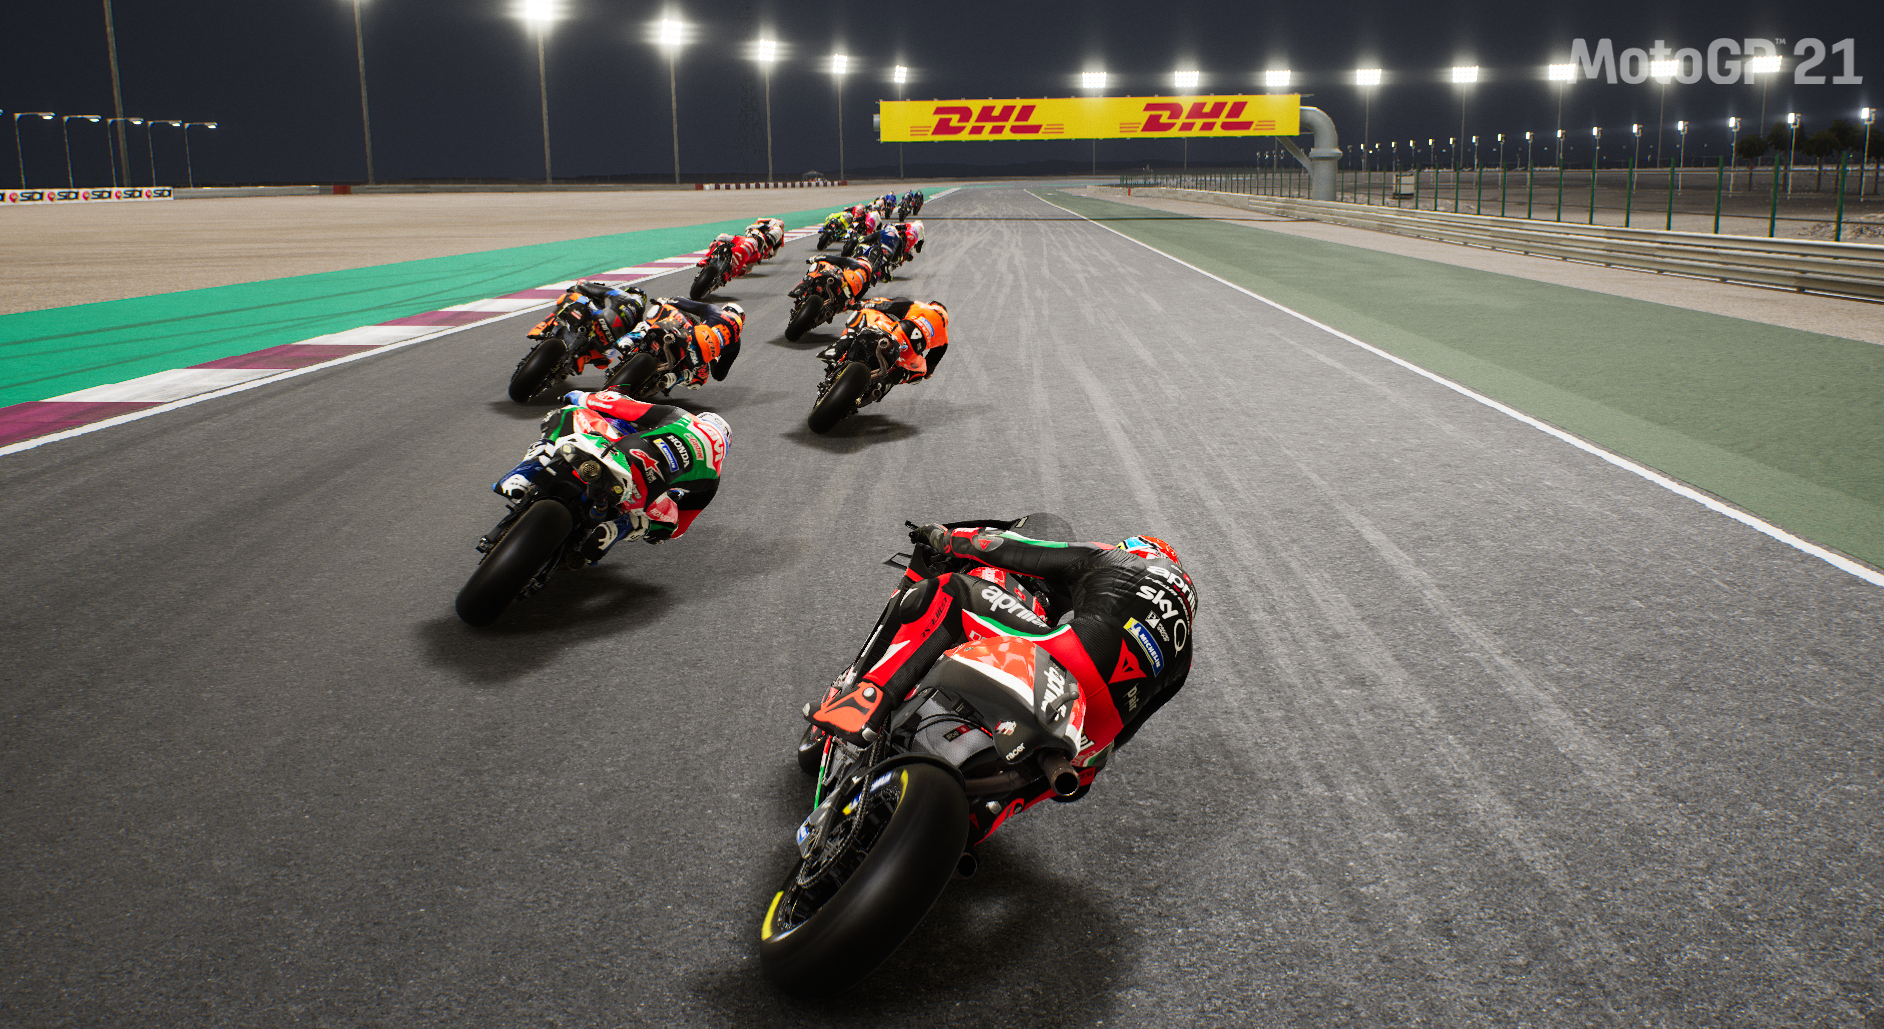 motogp 21 android download